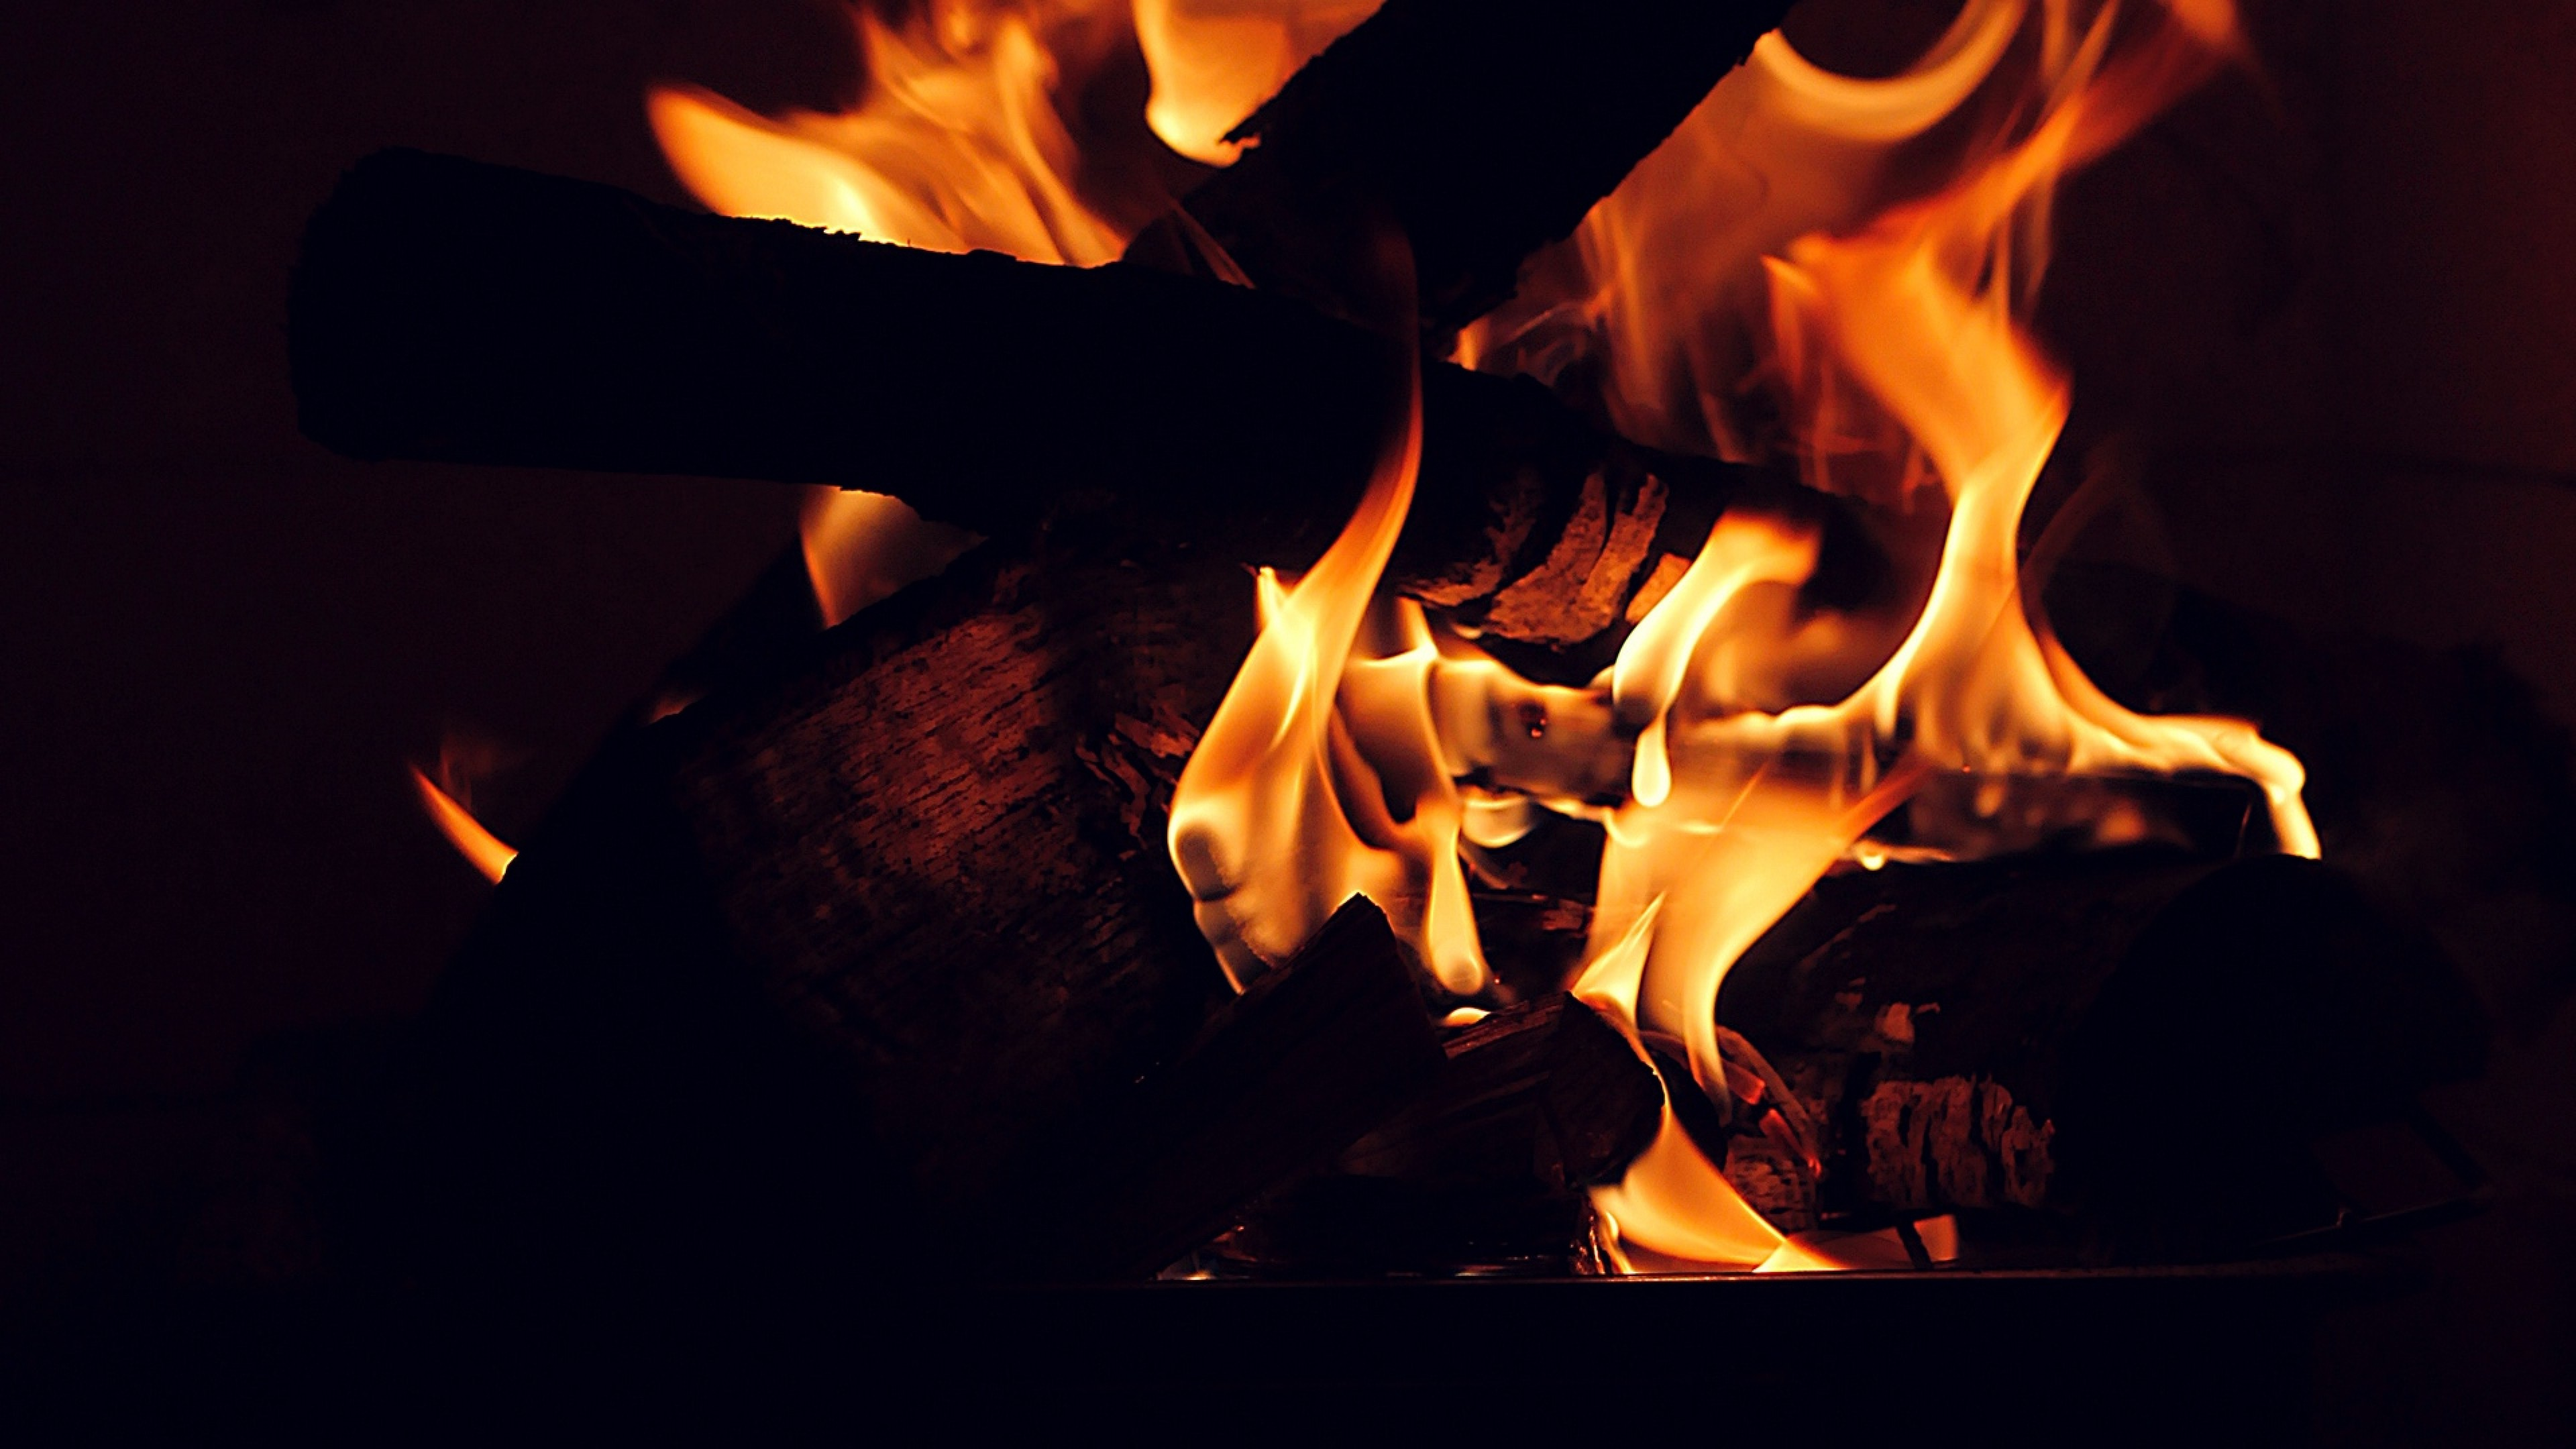 Burning firewood HD Wallpaper 4K Ultra HD - HD Wallpaper